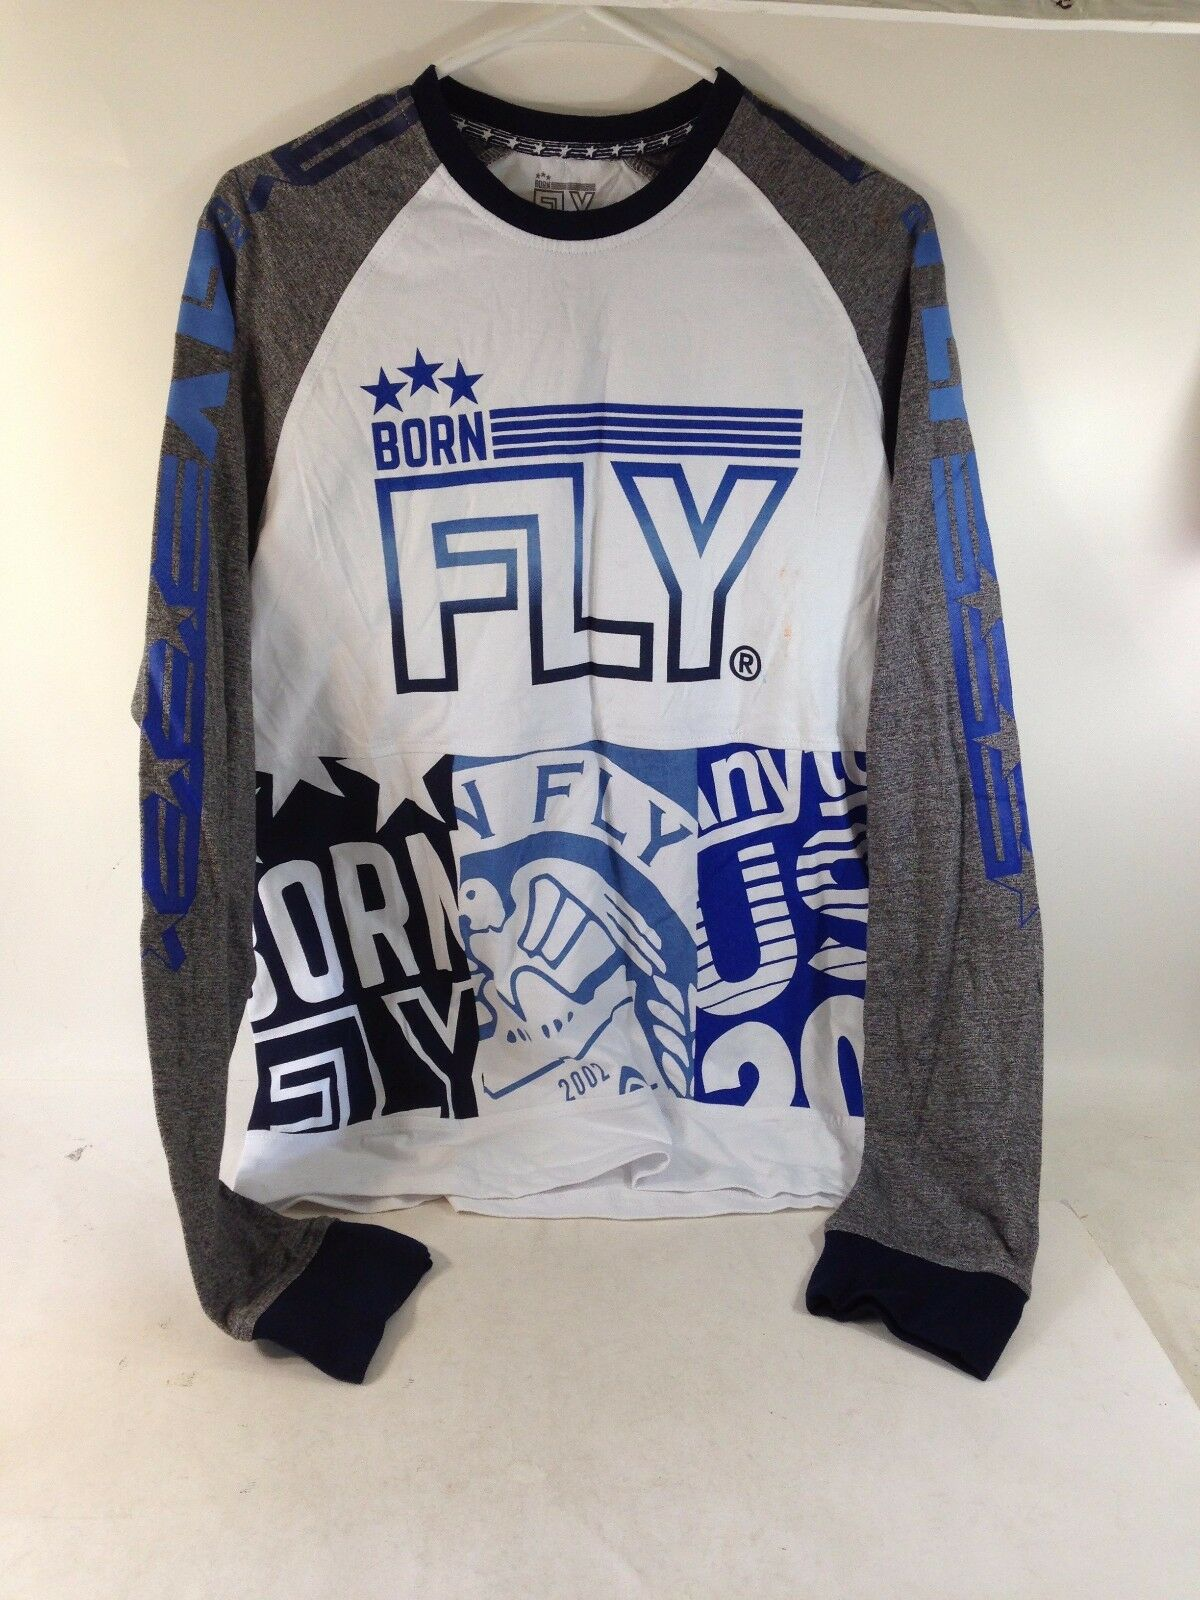 New BORN FLY ANY TOWN USA 2002 LONG SLEEVE SHIRT Size L